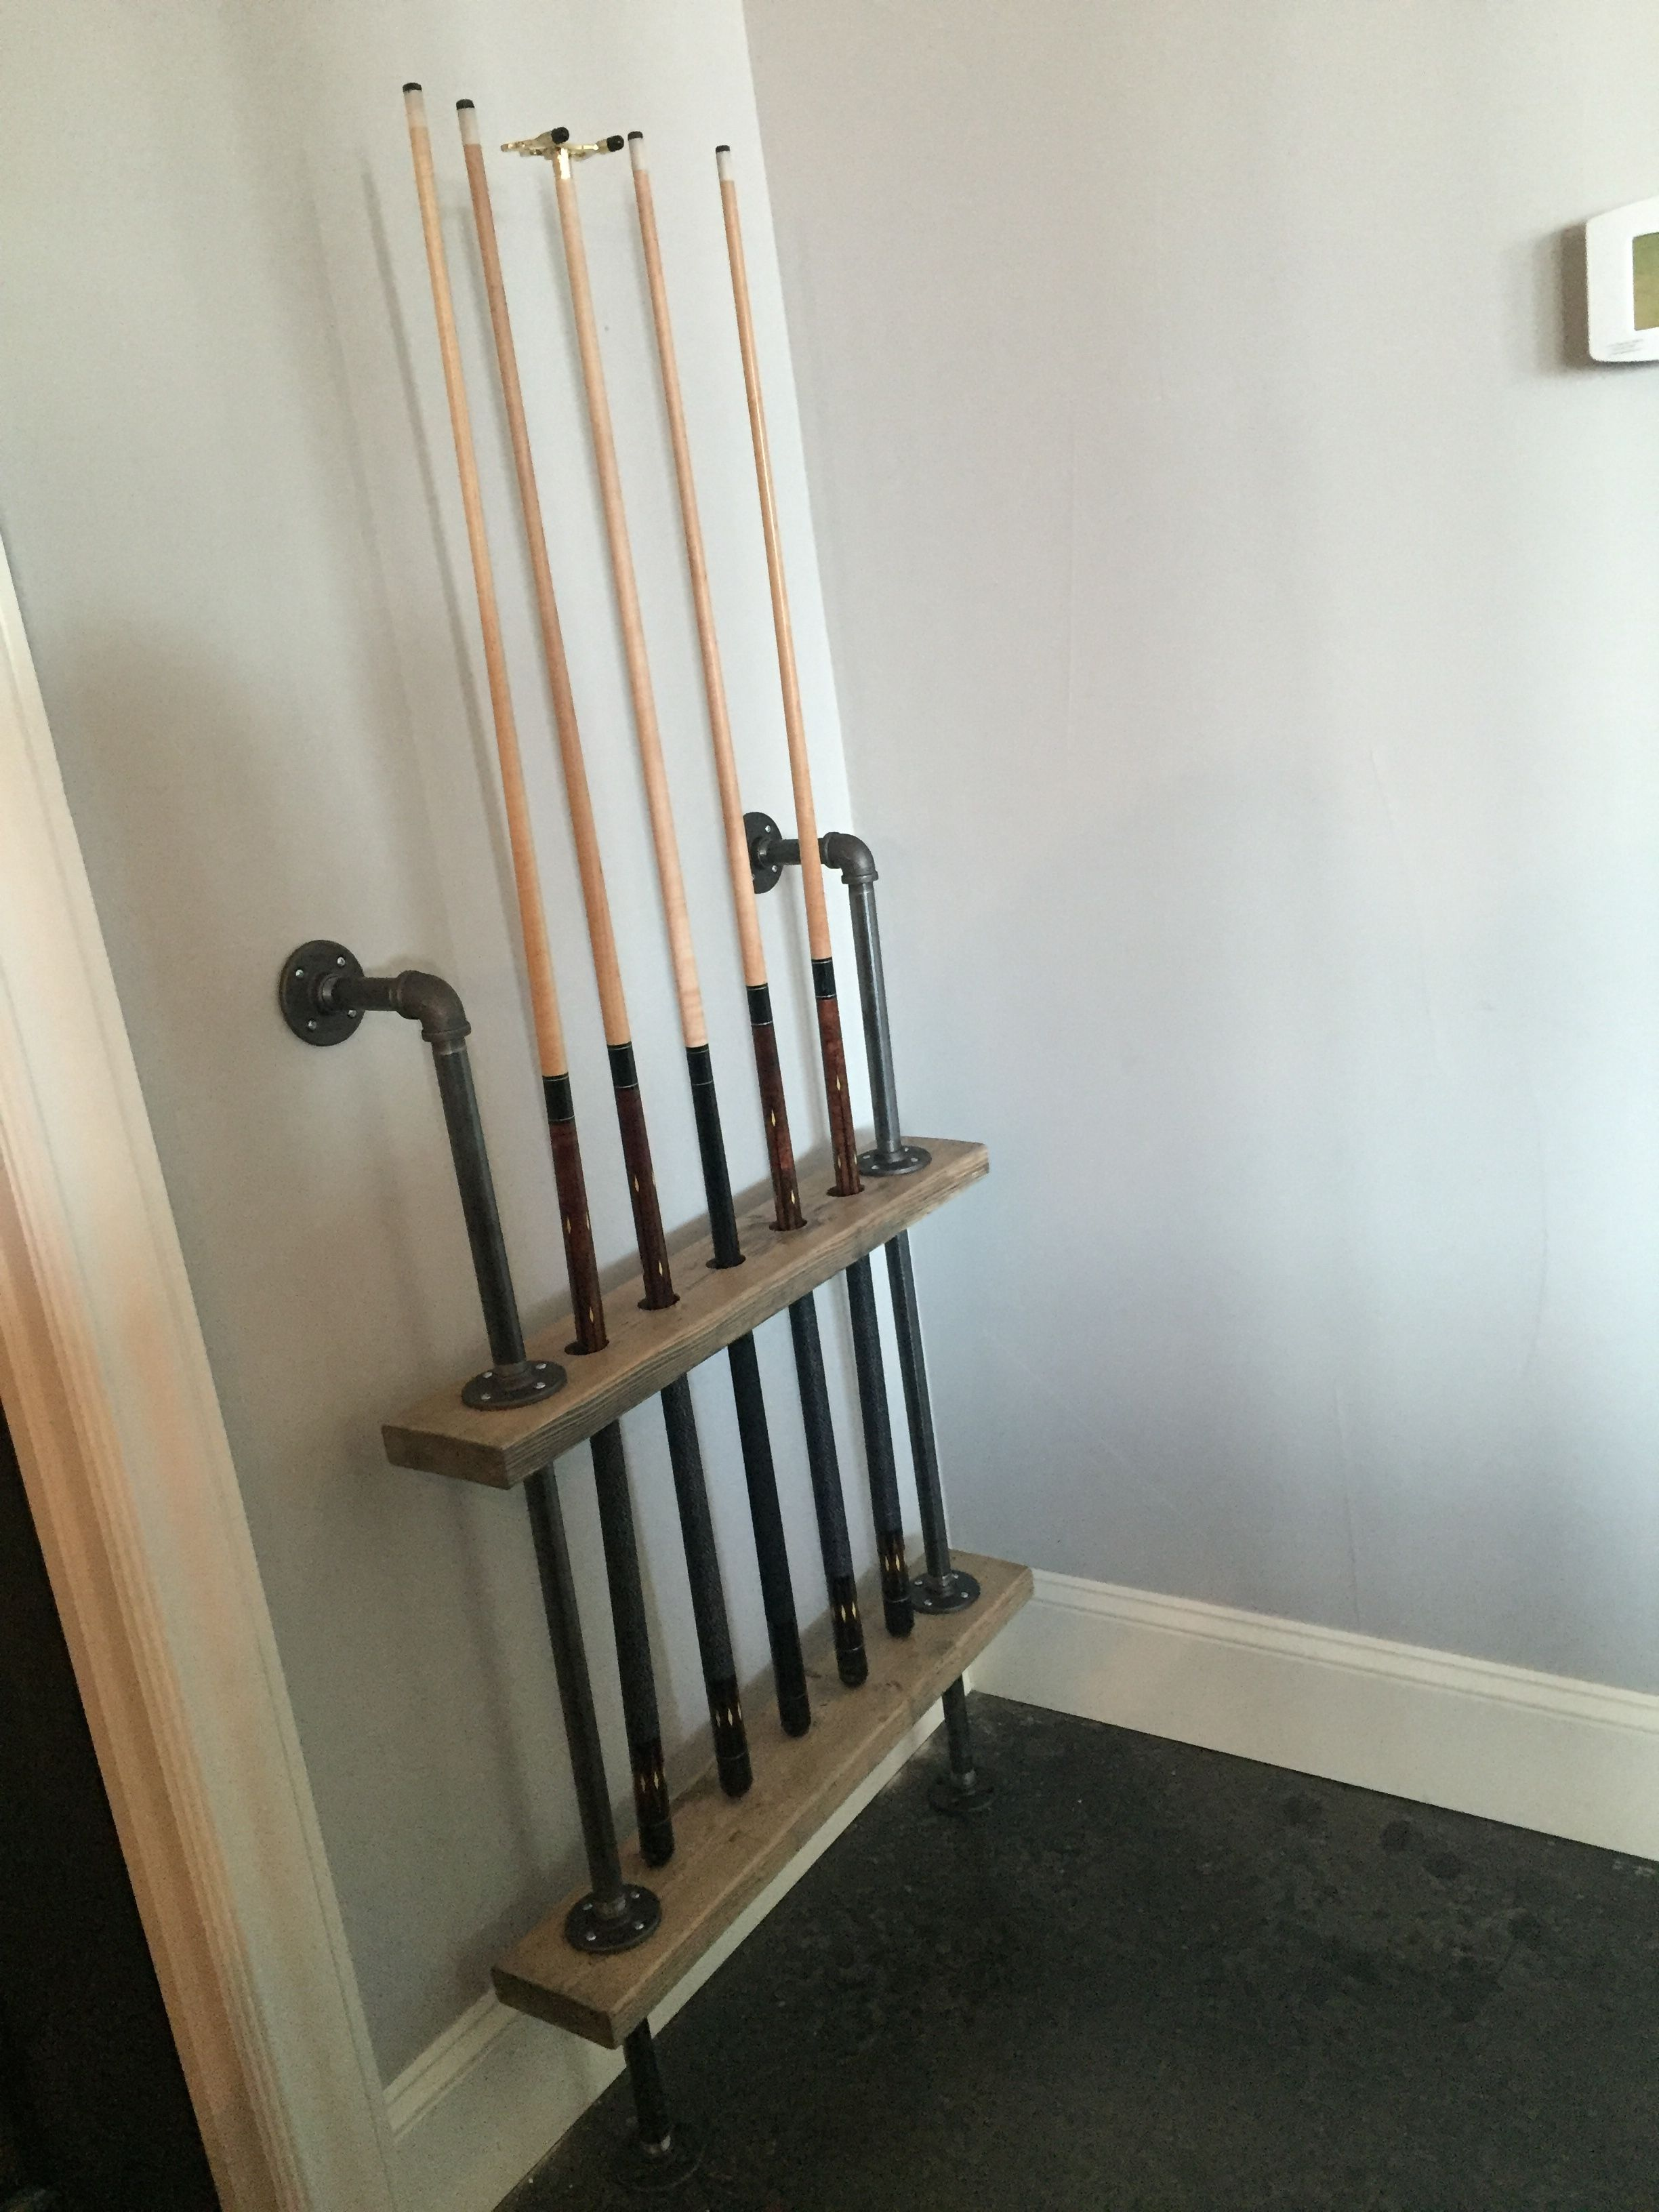 Diy Pipe Industrial Pool Cue Rack Man Cave In 2019